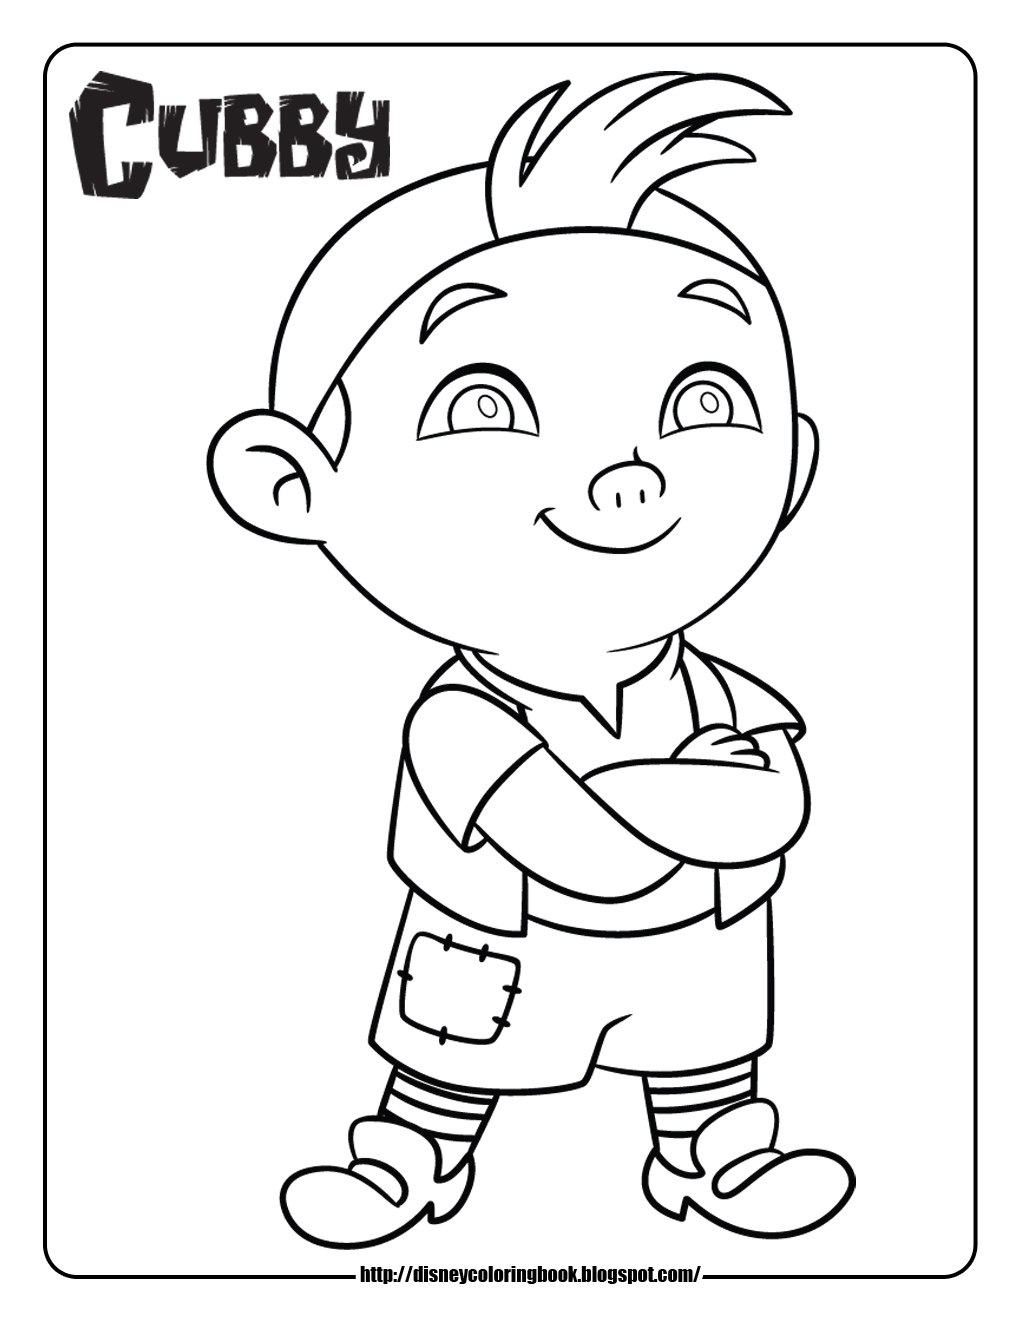 disney pirates coloring pages - photo#5